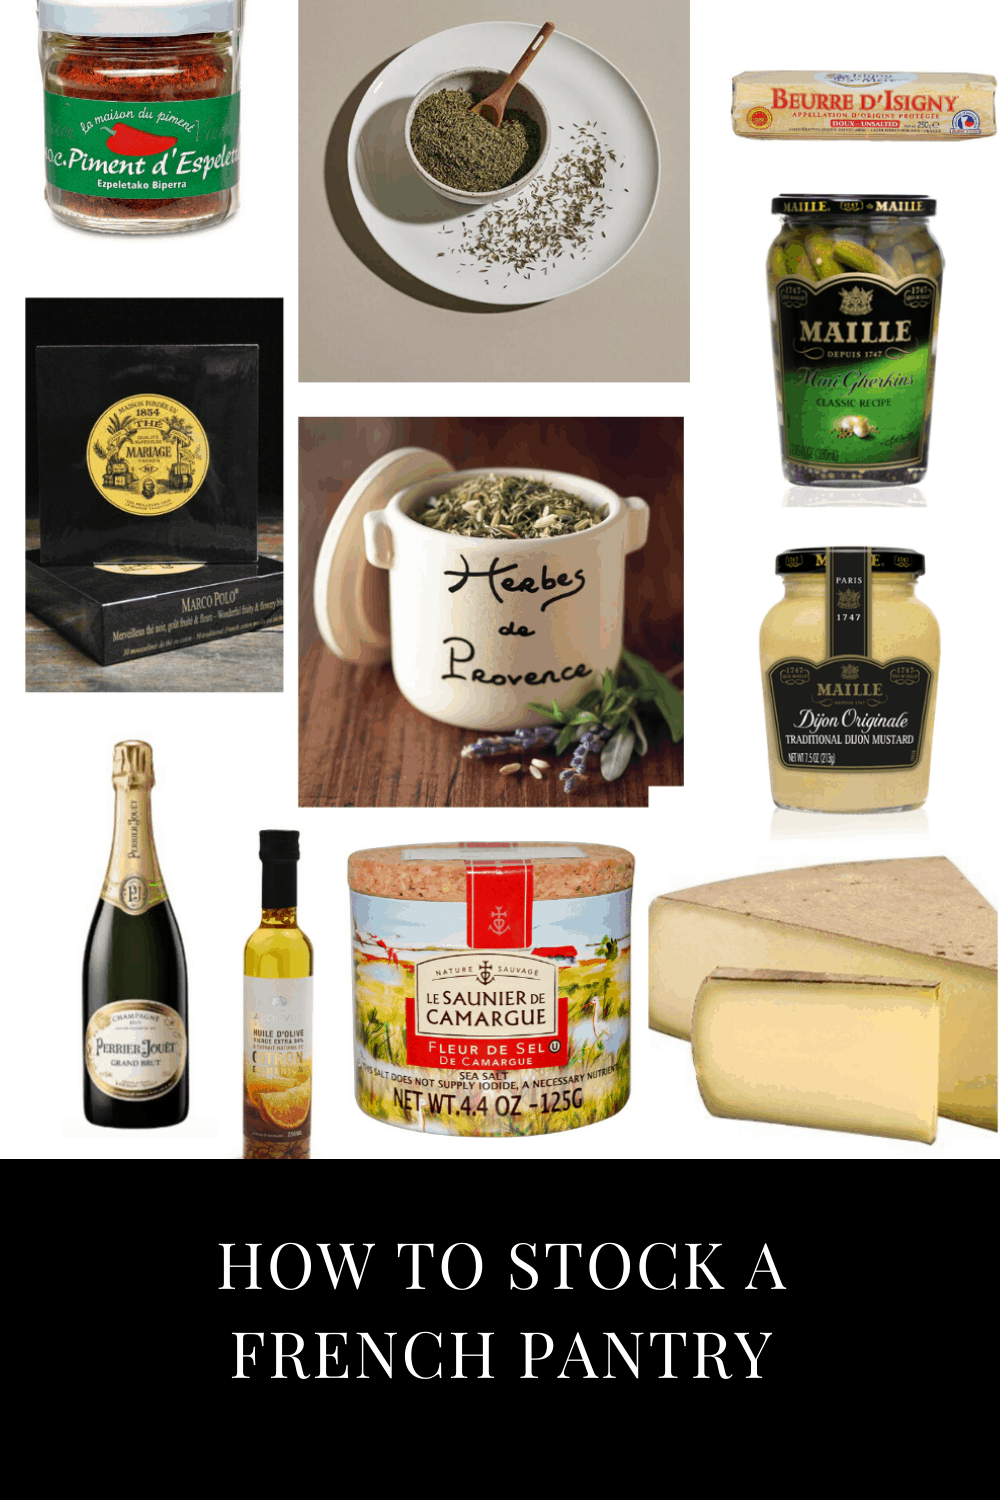 how to stock a french pantry pinterest.png